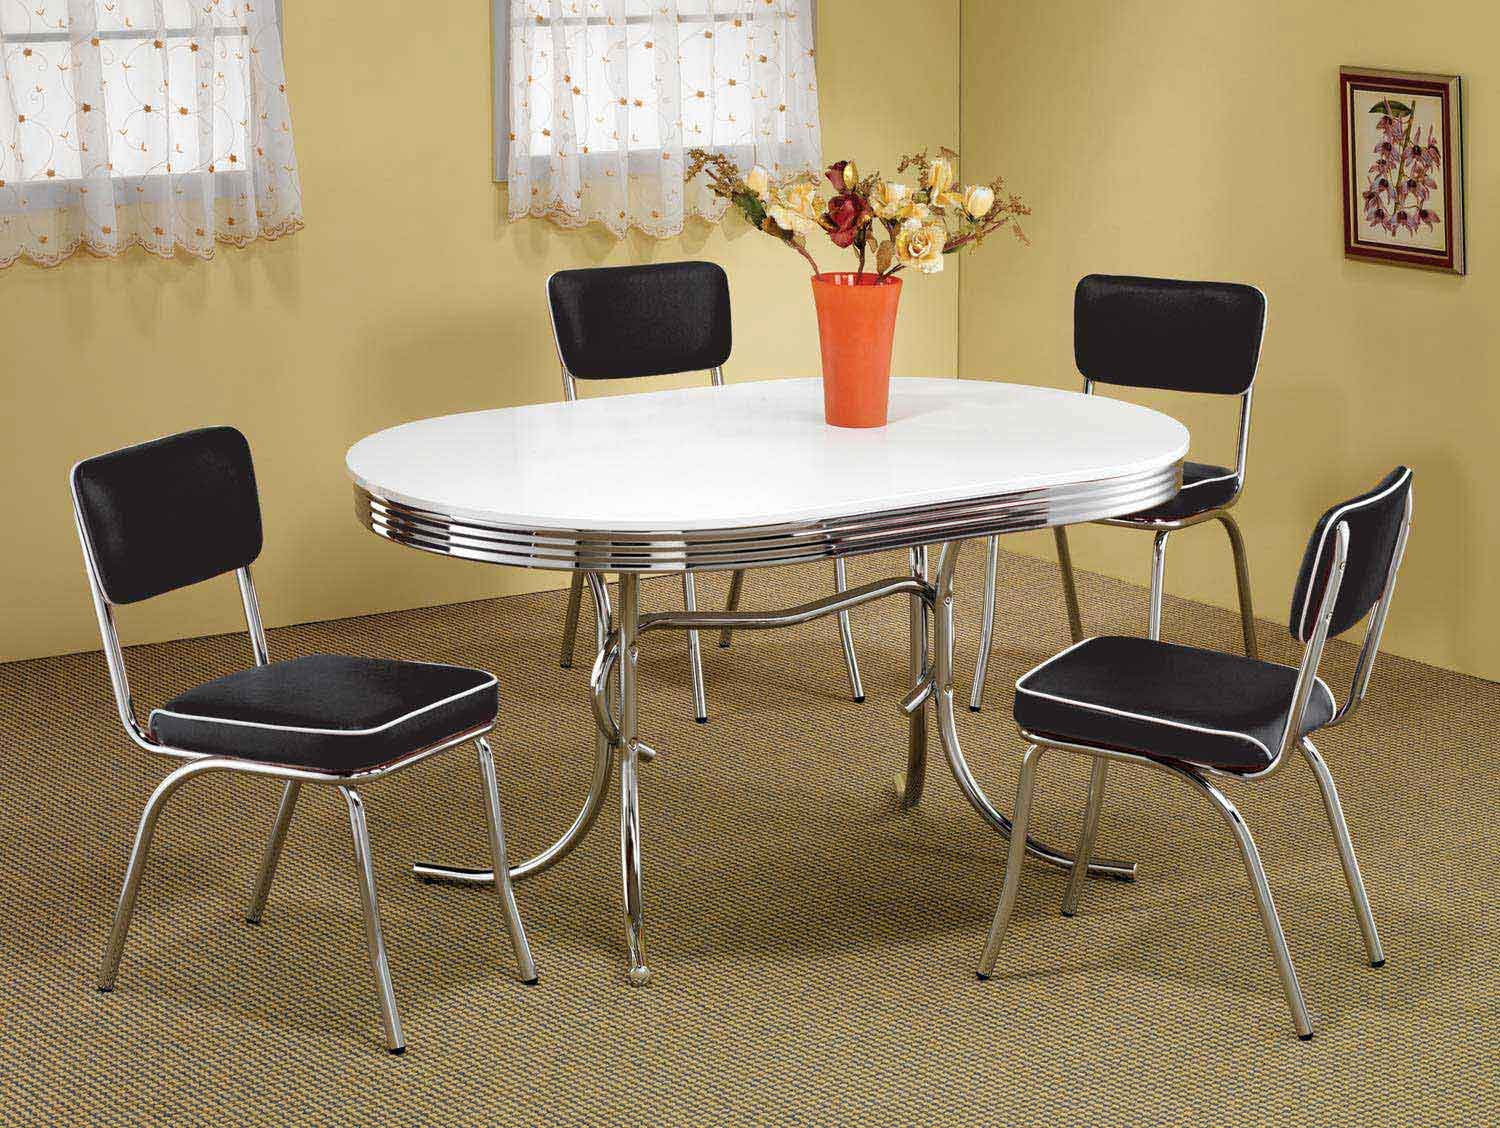 Coaster Mix & Match Oval Retro Dining Set - Black Chair